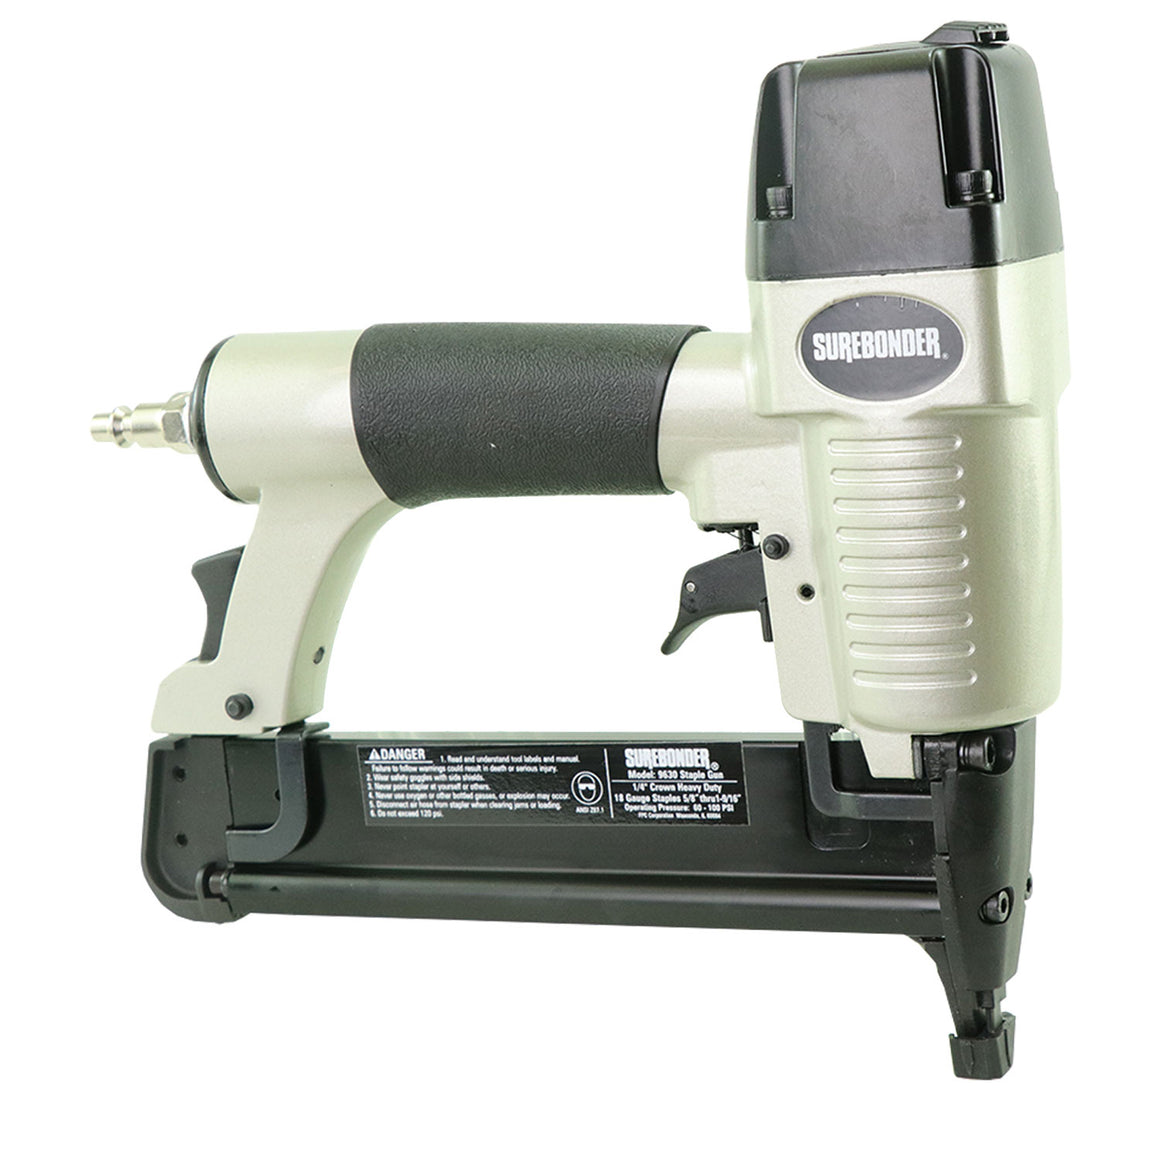 Pneumatic 18 Gauge Stapler with Case - Surebonder